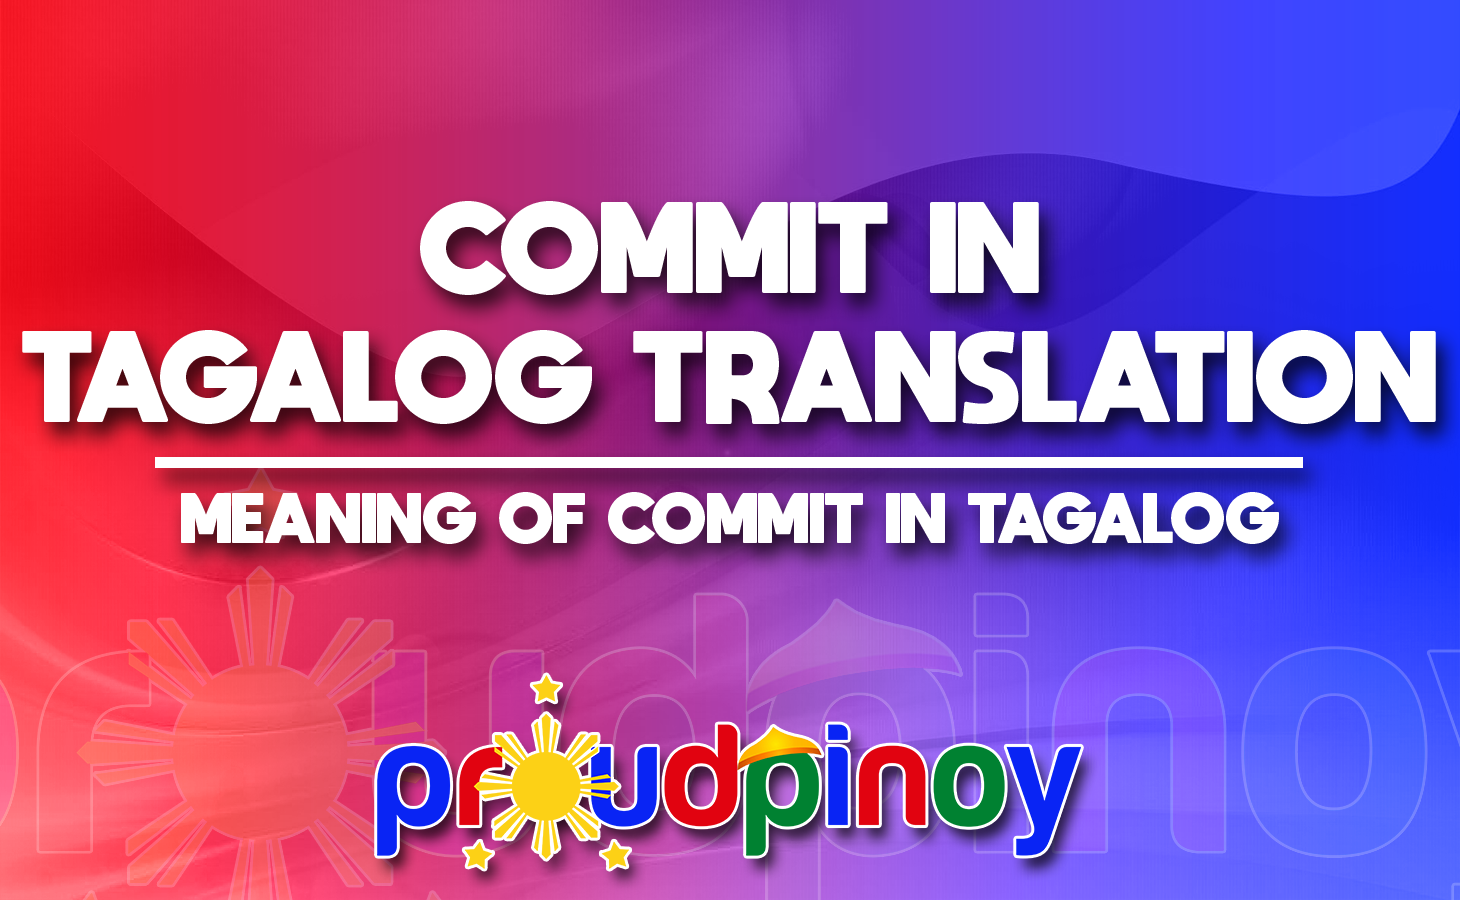 COMMIT IN TAGALOG TRANSLATION - MEANING OF COMMIT IN TAGALOG